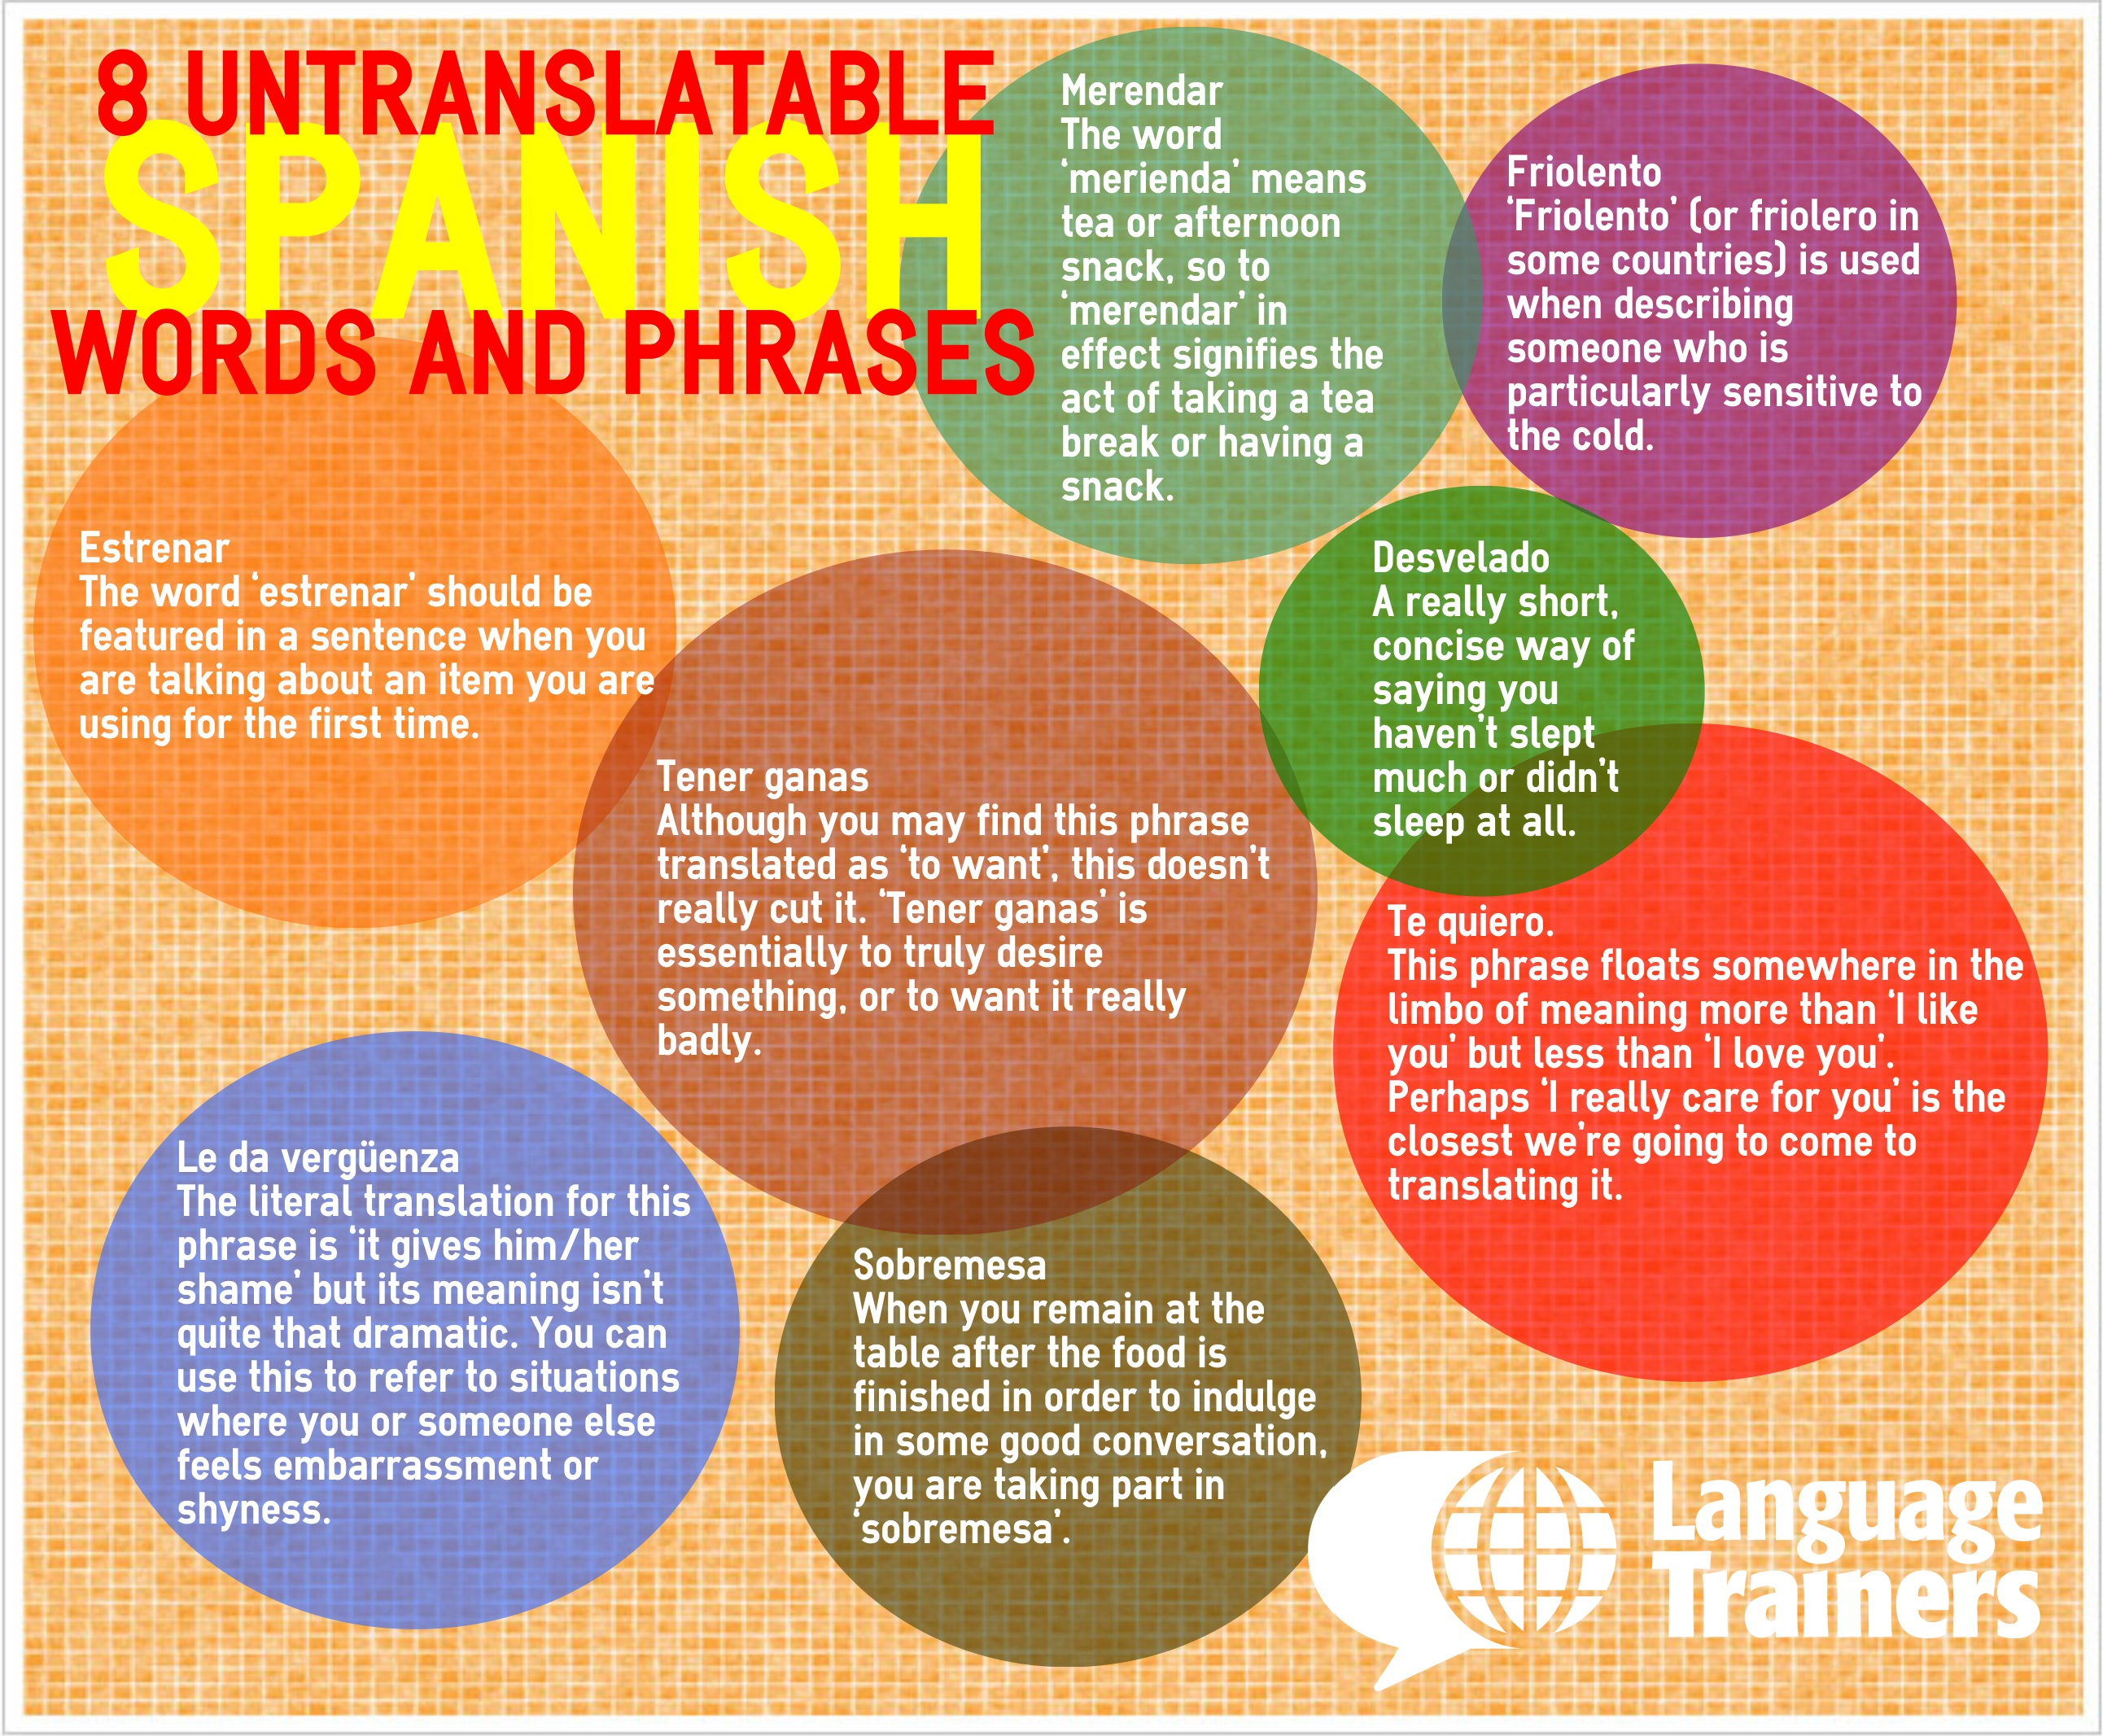 8 untranslatable spanish phrases to know and use language trainers